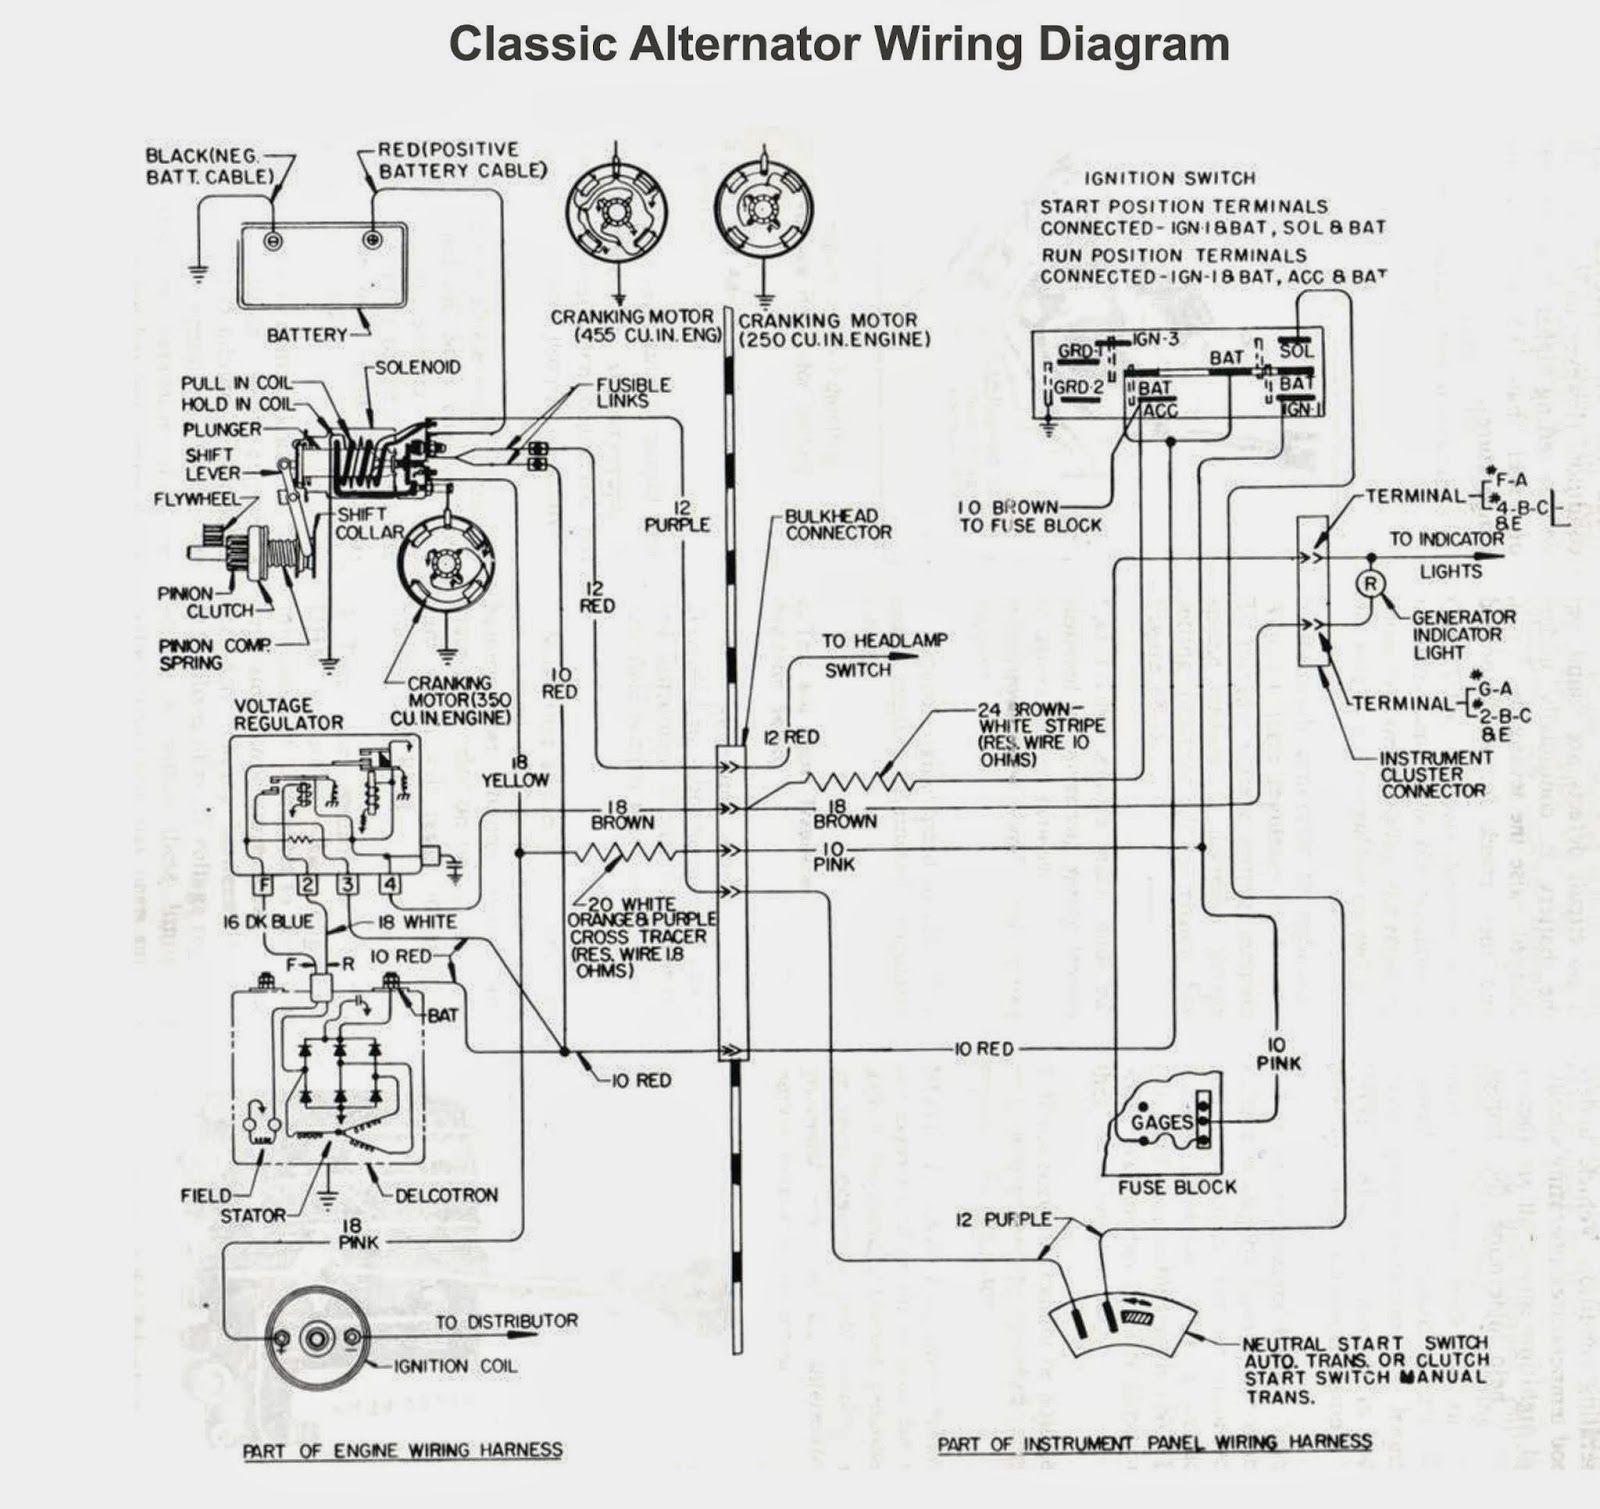 Car Alternator Wiring Schematic Control Diagram Two Wire 2001 Grand Vitara Home Generator 42